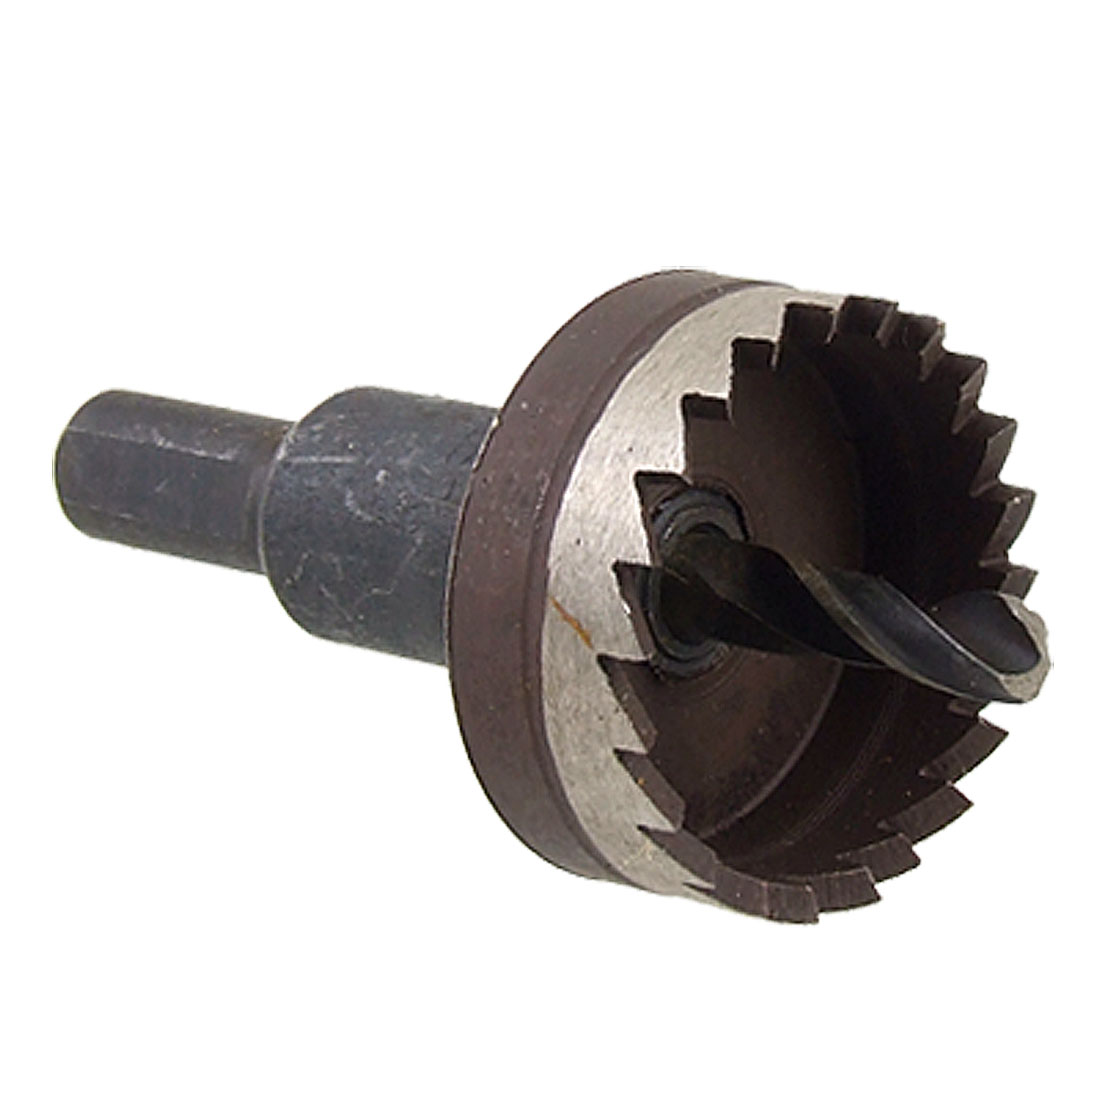 Cast Iron Cutting 35mm HSS Hole Saw Twist Drill Bit